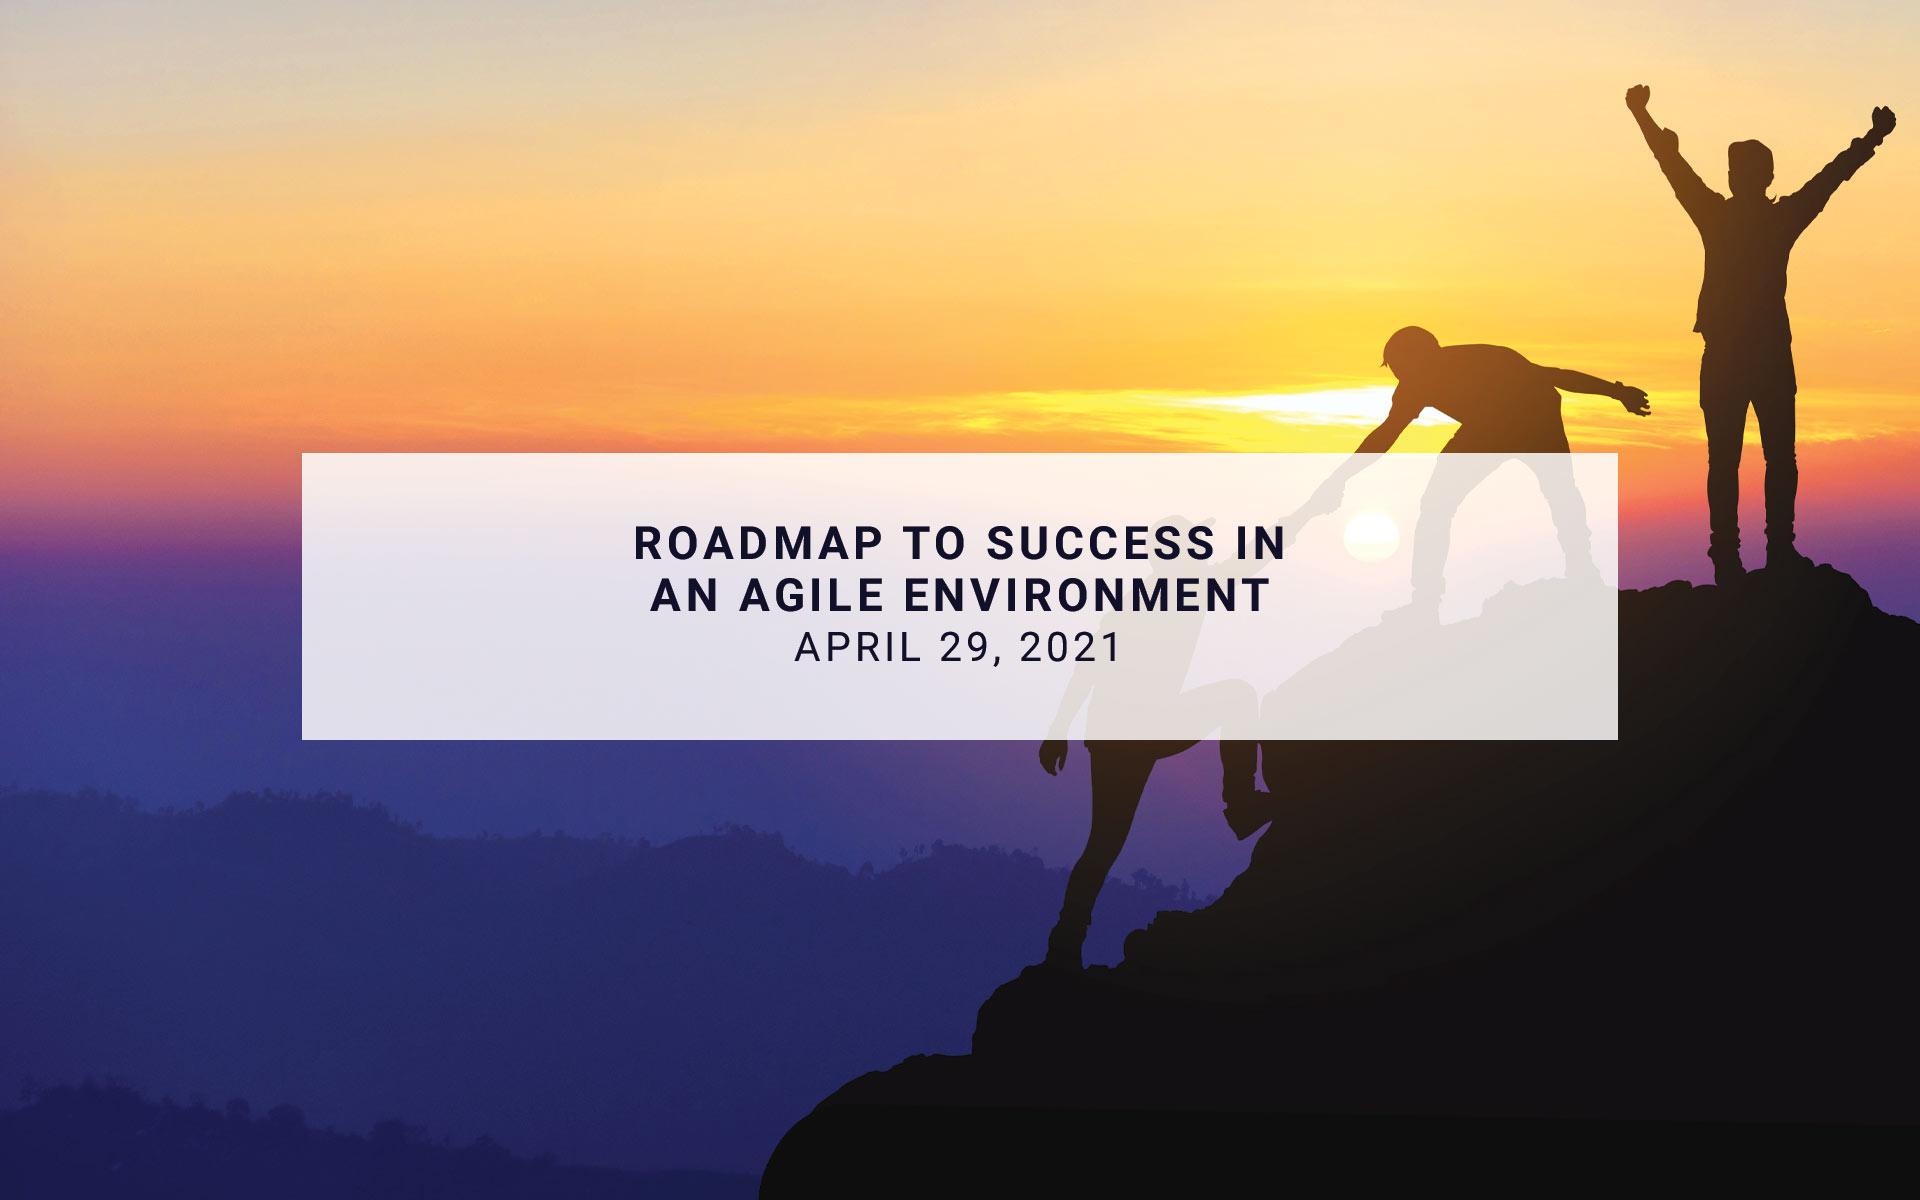 Roadmap to Success in an Agile Environment